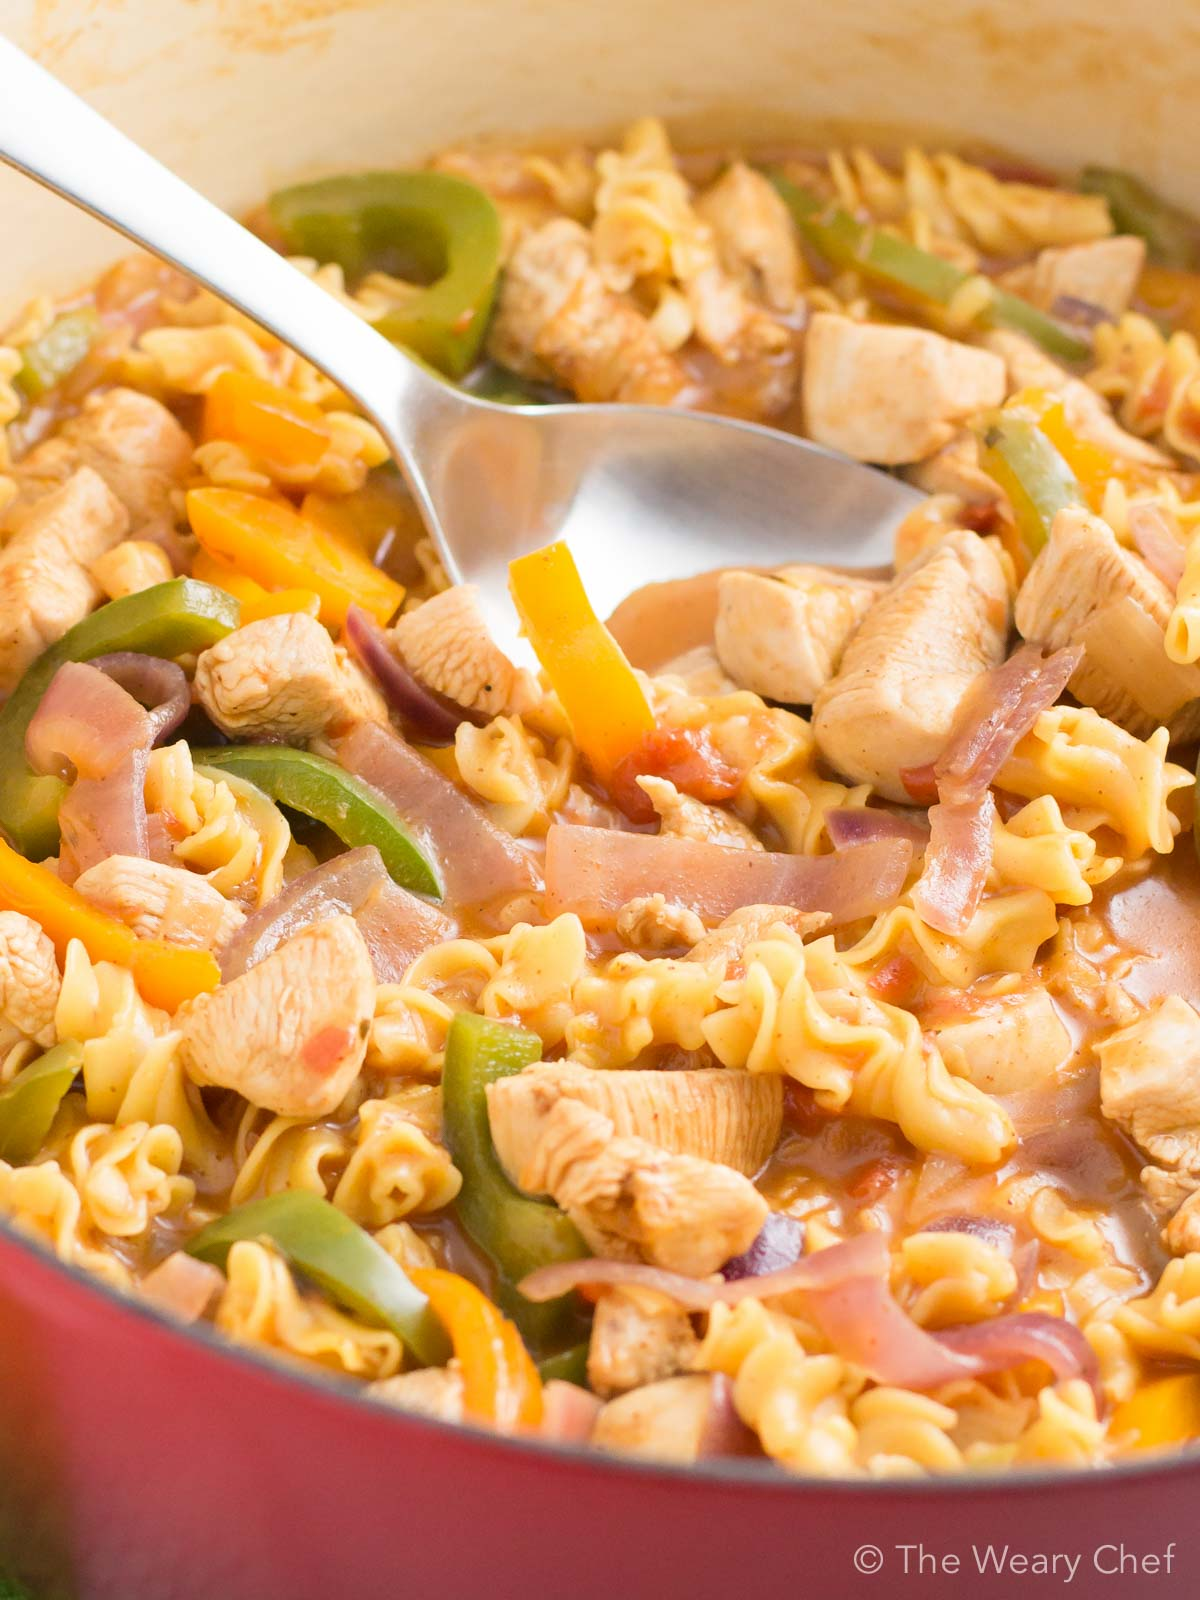 Reese suggests this as an easy weeknight dinner for the fam! Get the recipe from Delish.